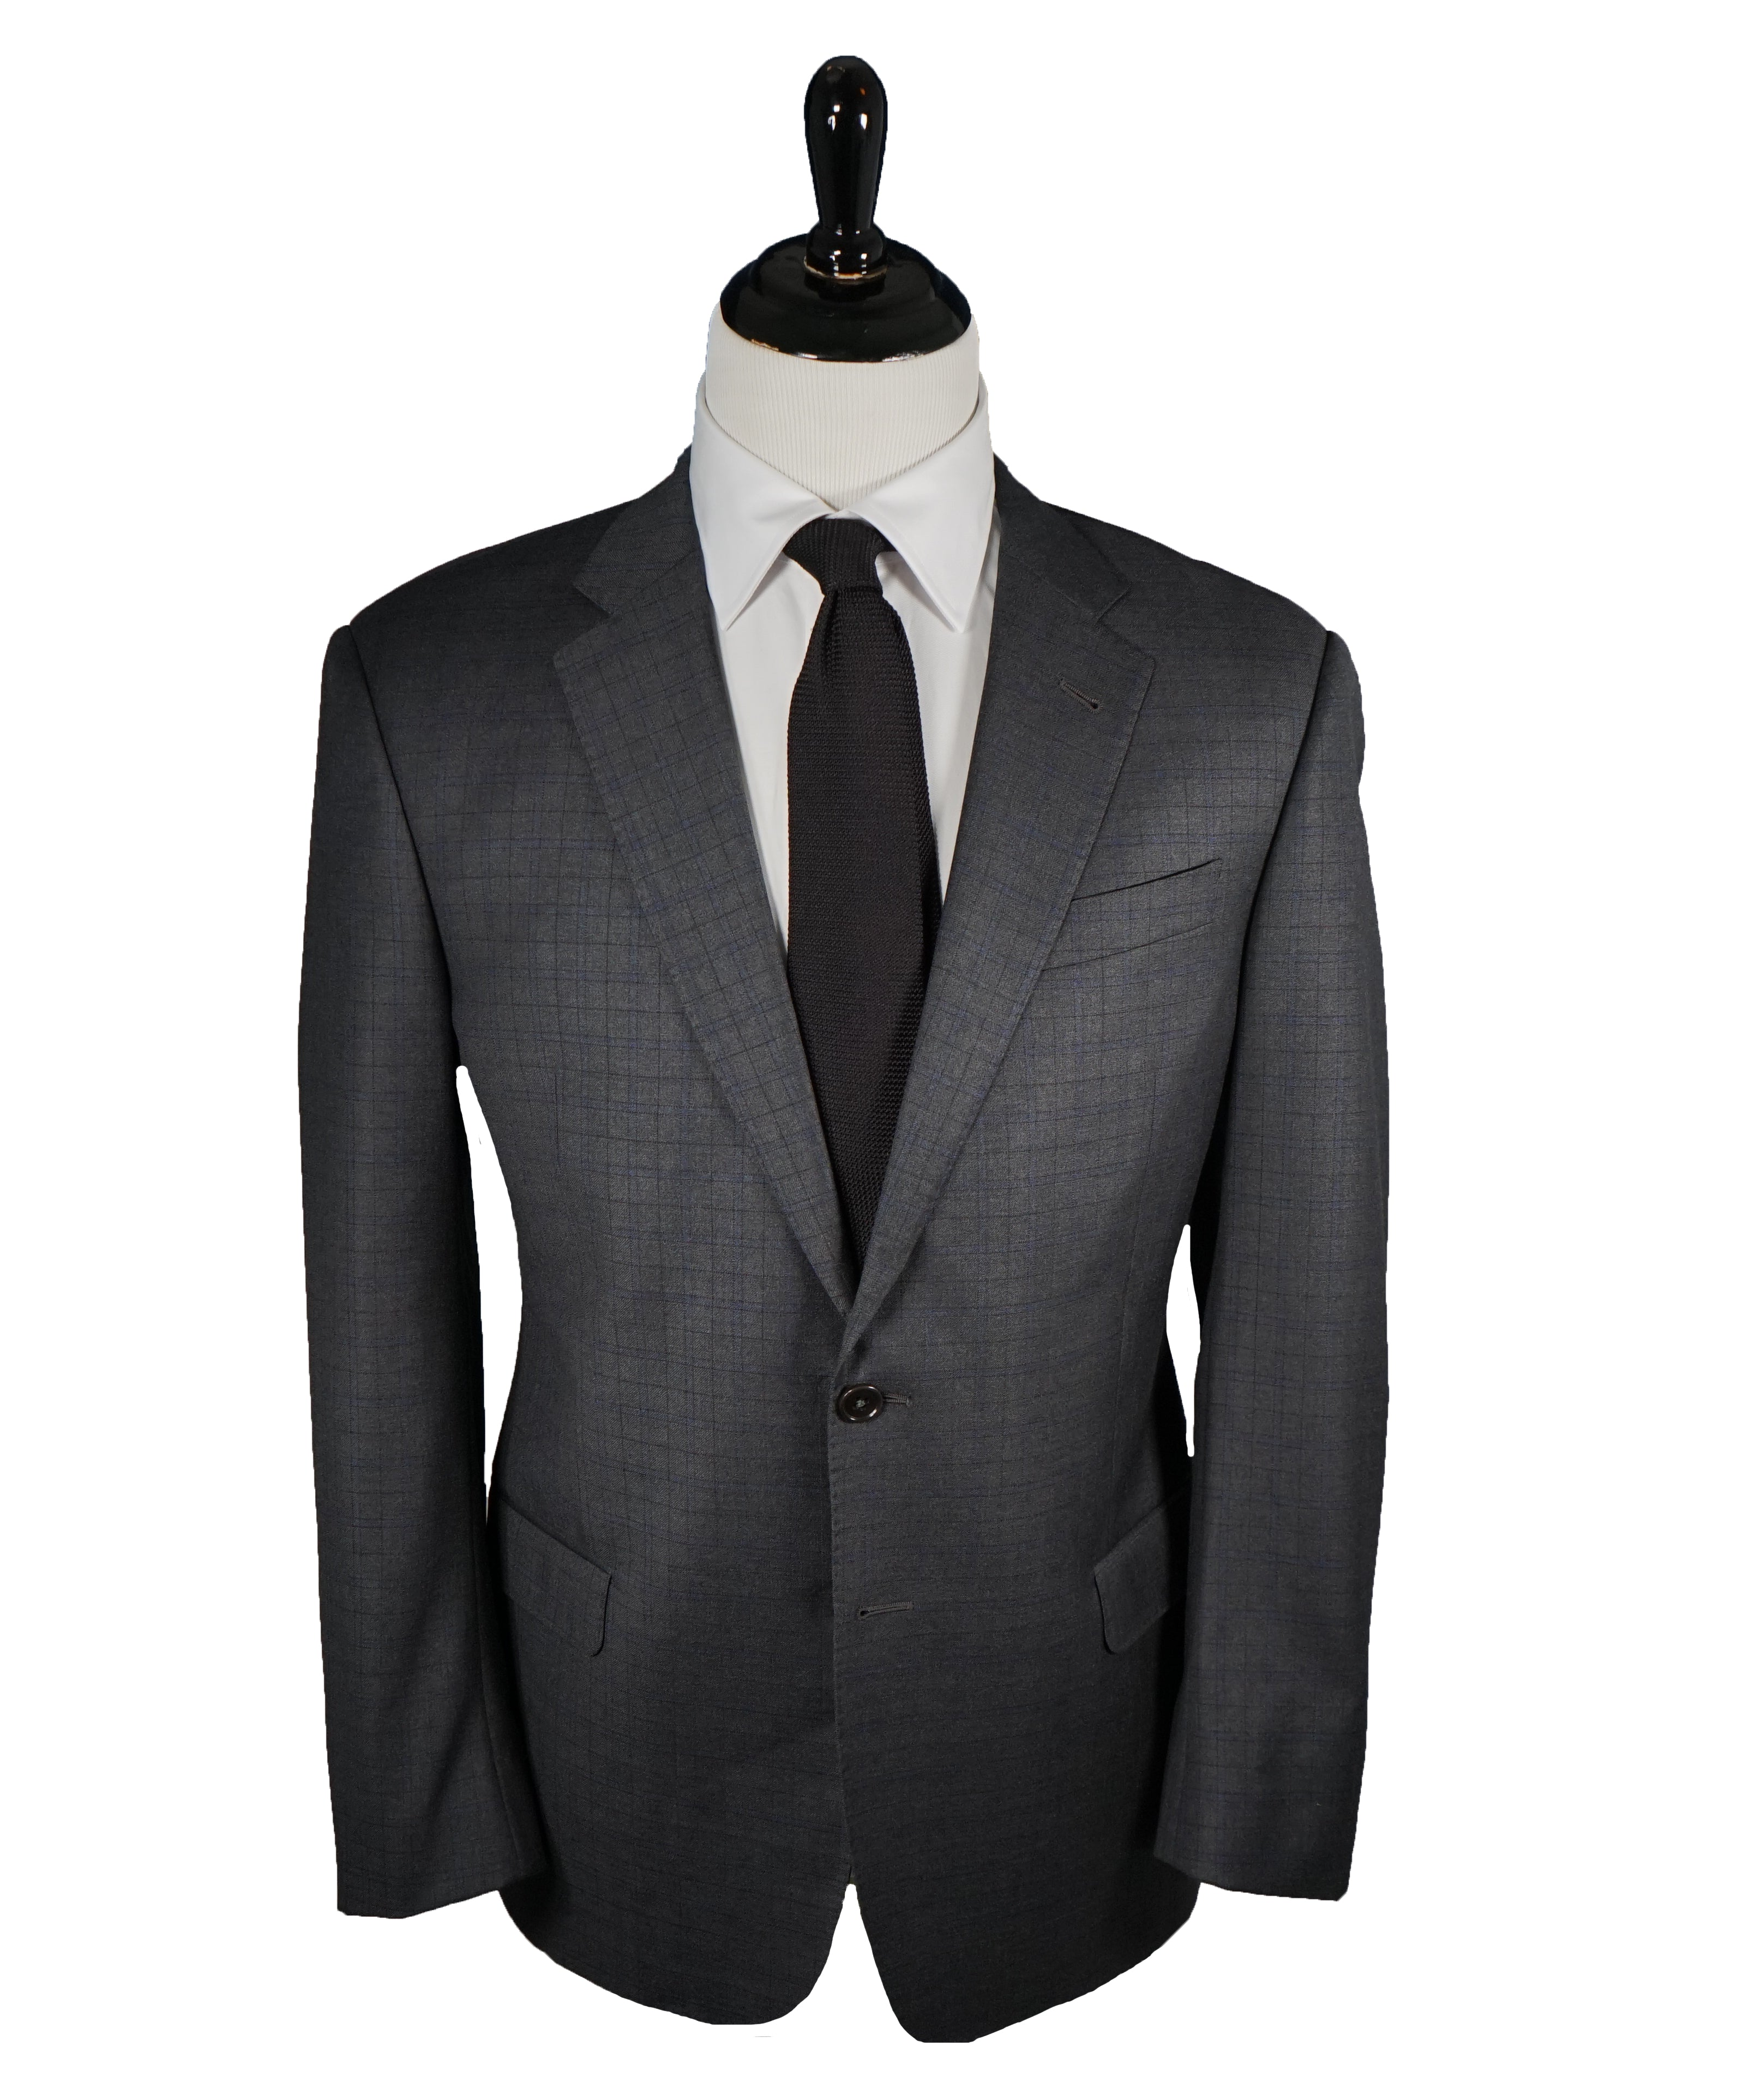 "ARMANI COLLEZIONI - Blue & Gray Bold Plaid Check Suit ""G Line"" - 42R"